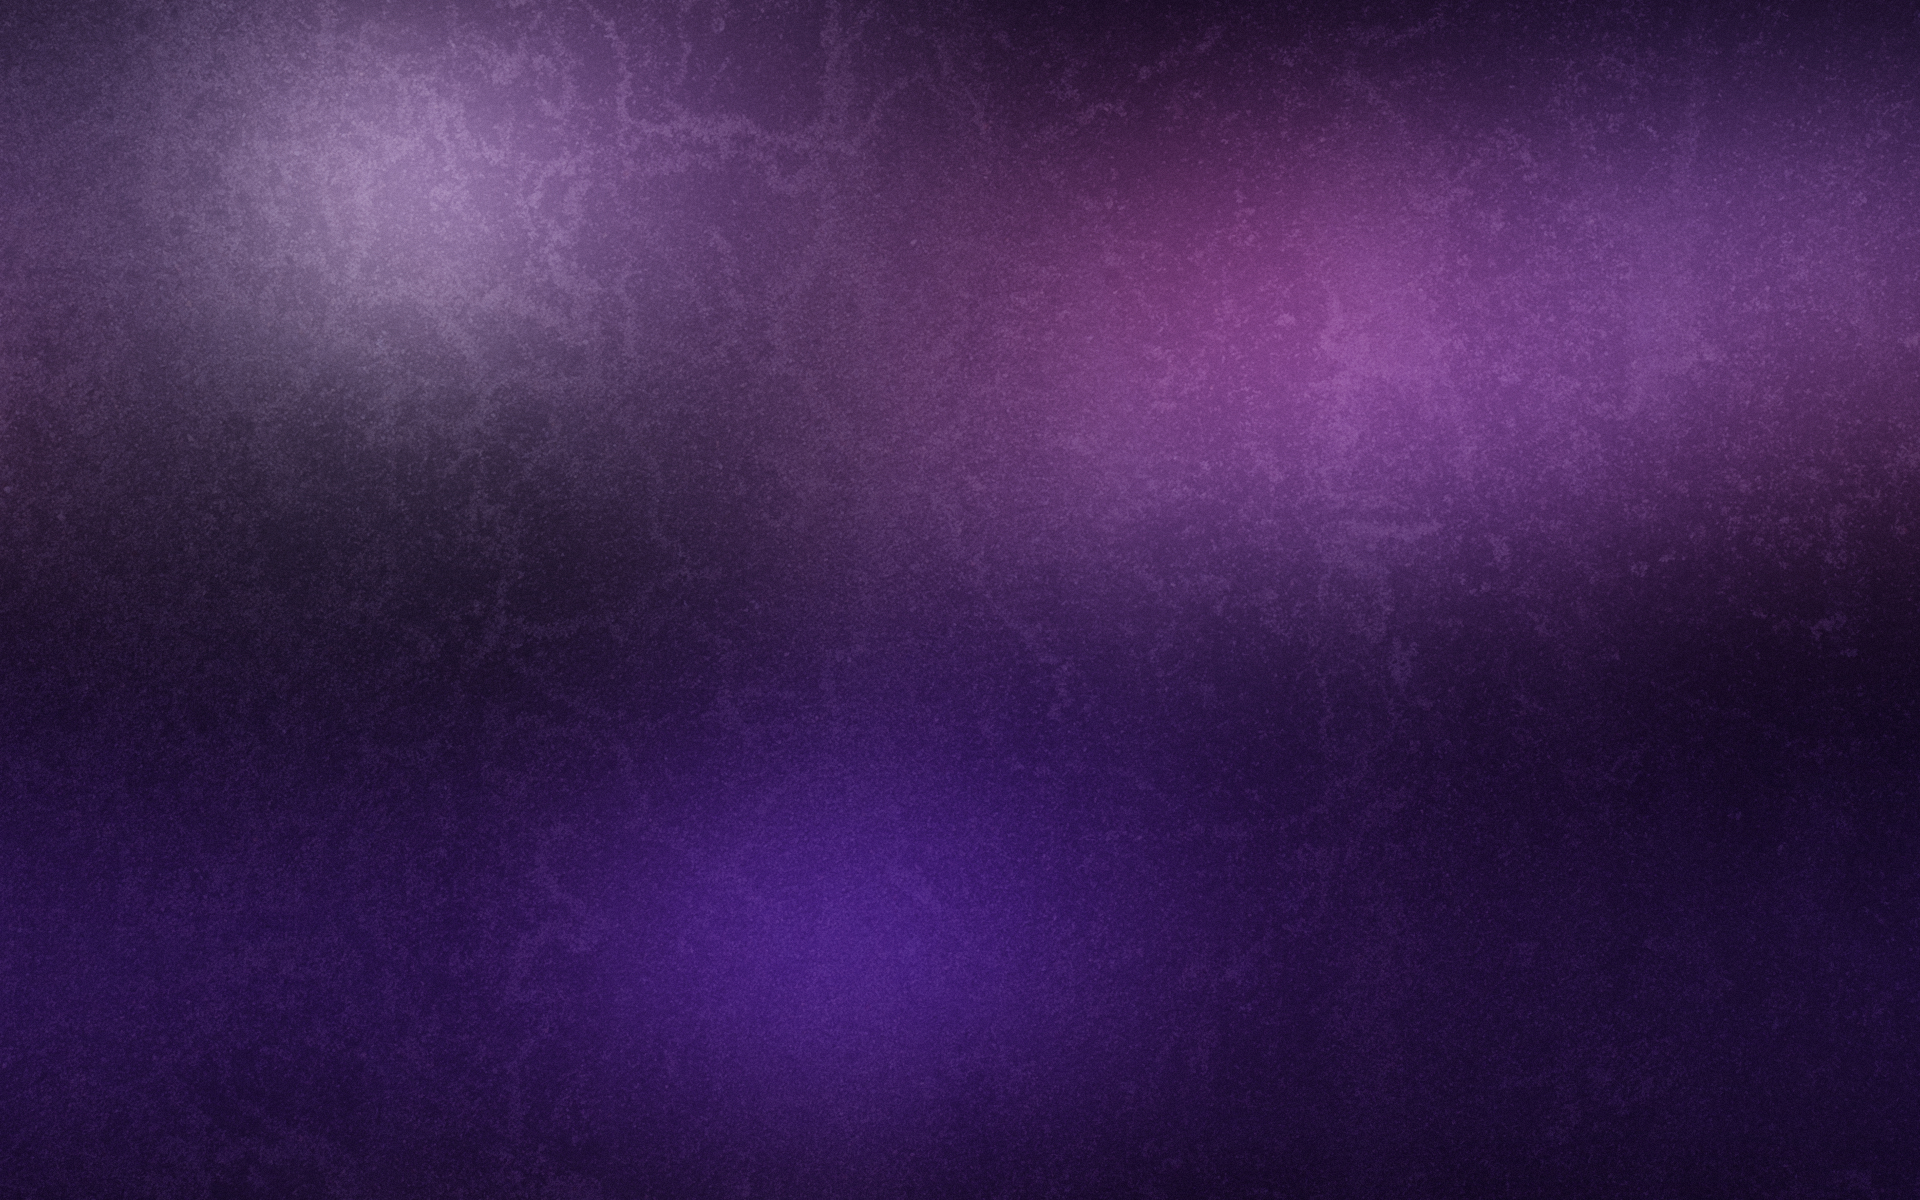 minimalistic purple textures wallpaper 1920x1200 10210